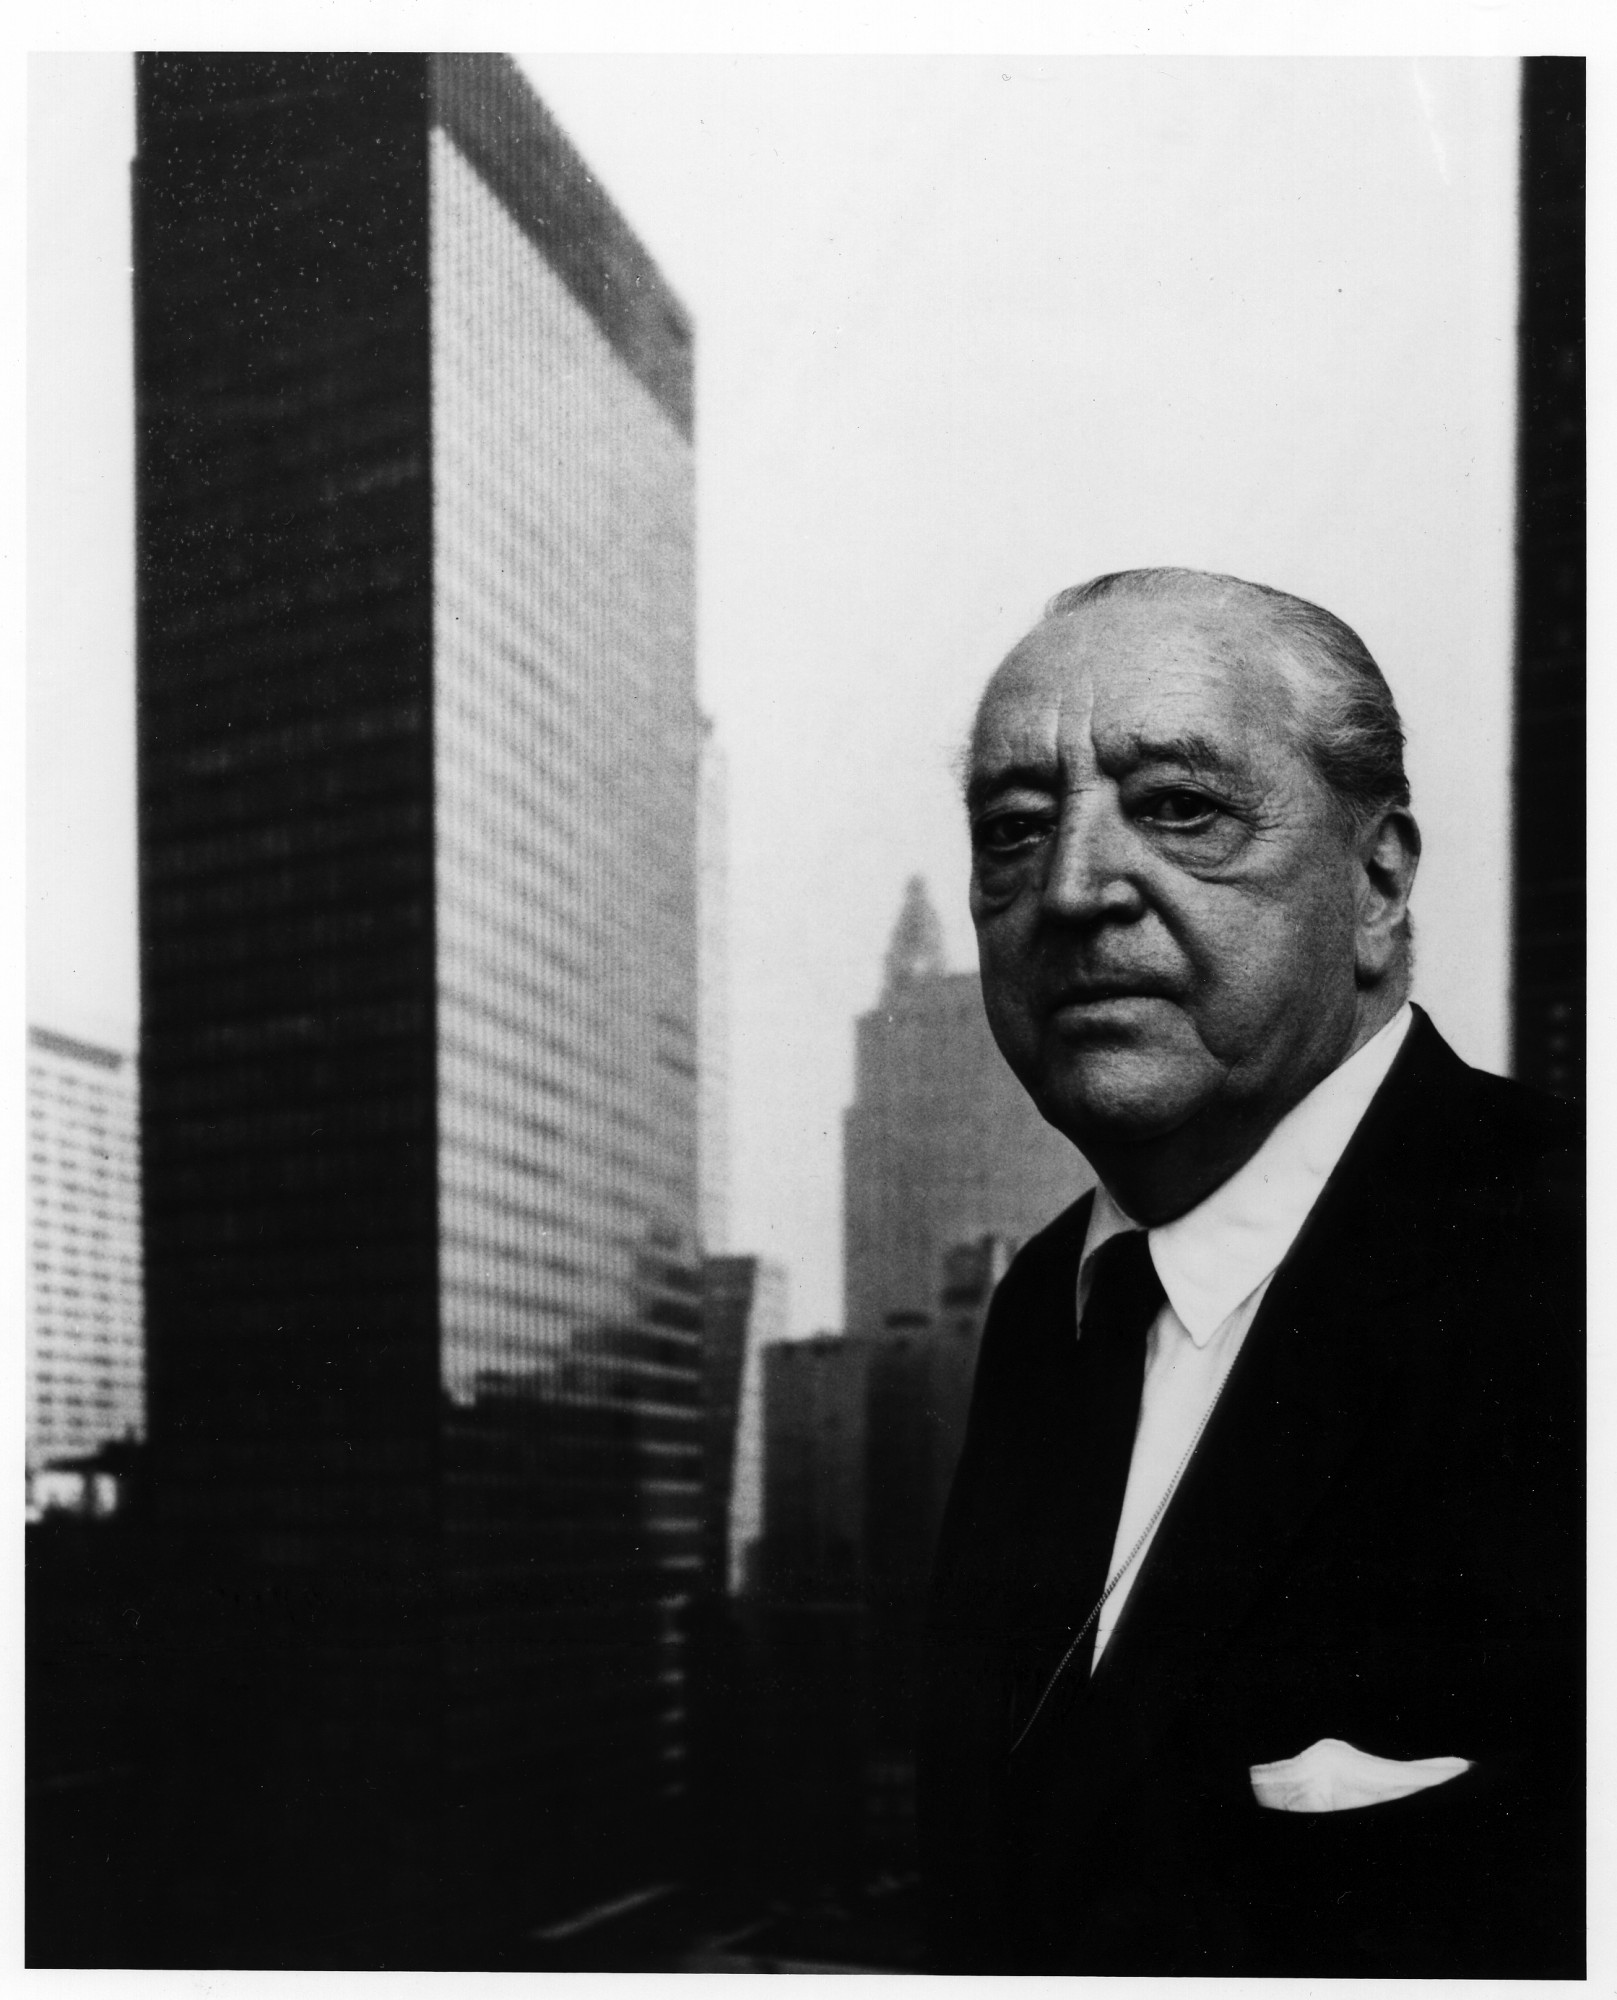 ludwig mies van der rohe architecture design visual dictionary chicago architecture center. Black Bedroom Furniture Sets. Home Design Ideas